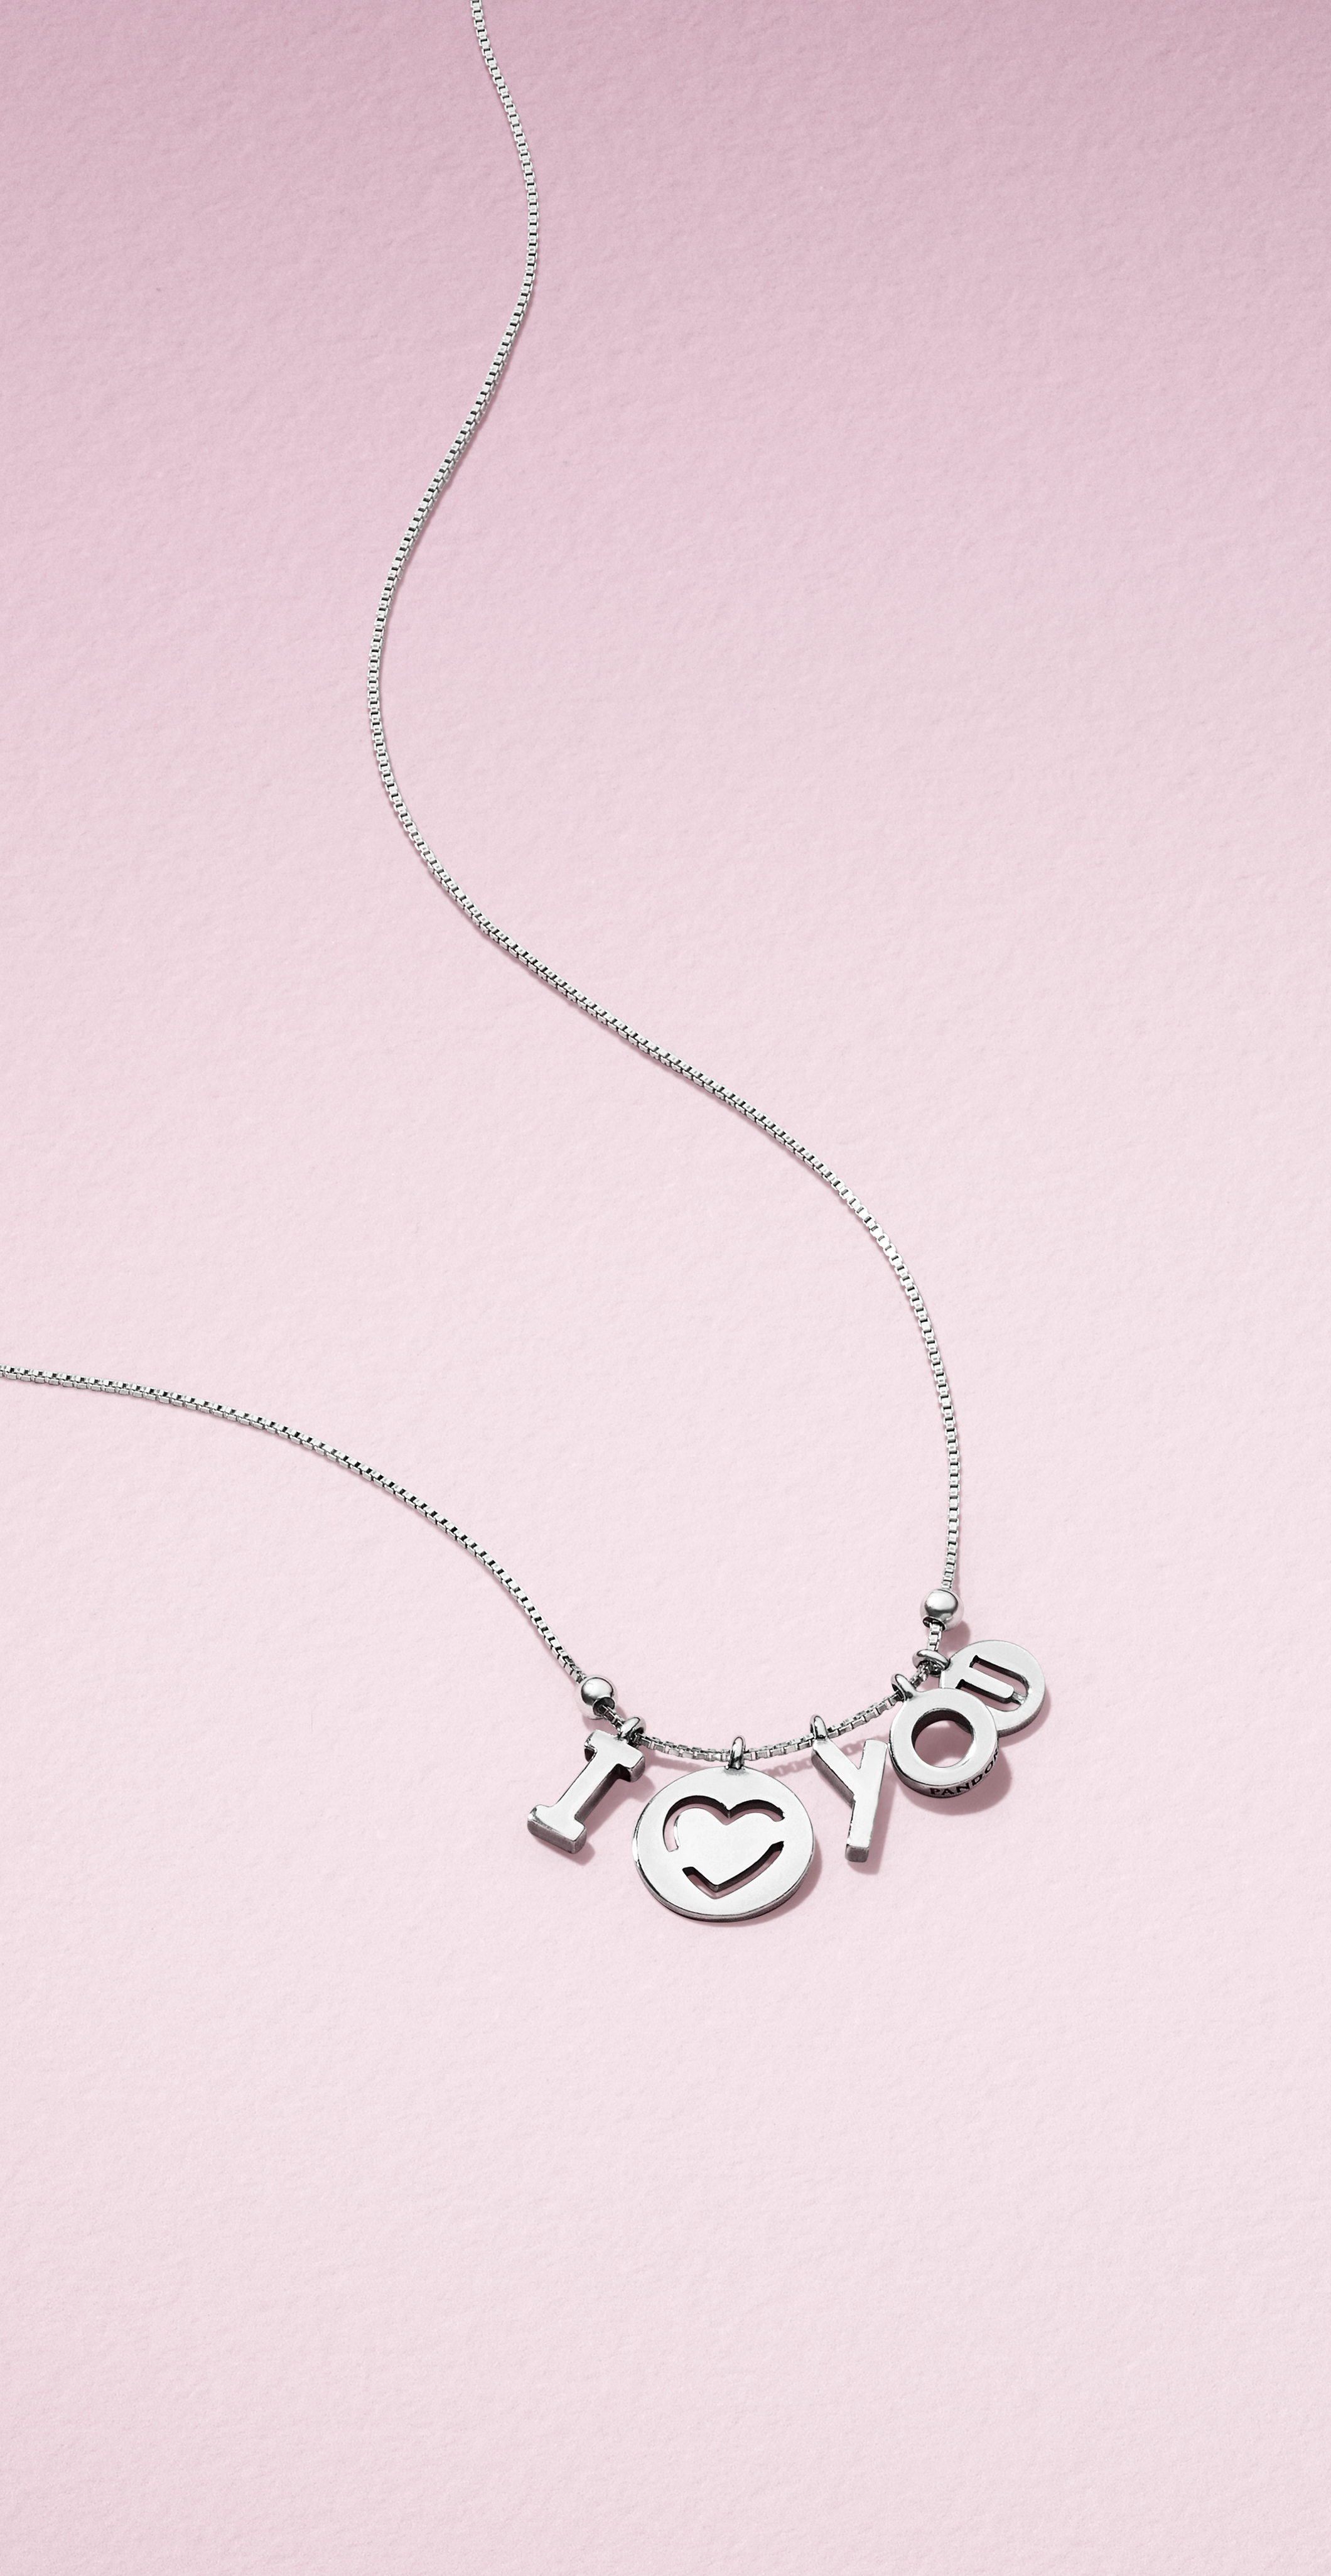 Spell out your love with PANDORA's sterling silver necklace from the brand new Valentine's collection.